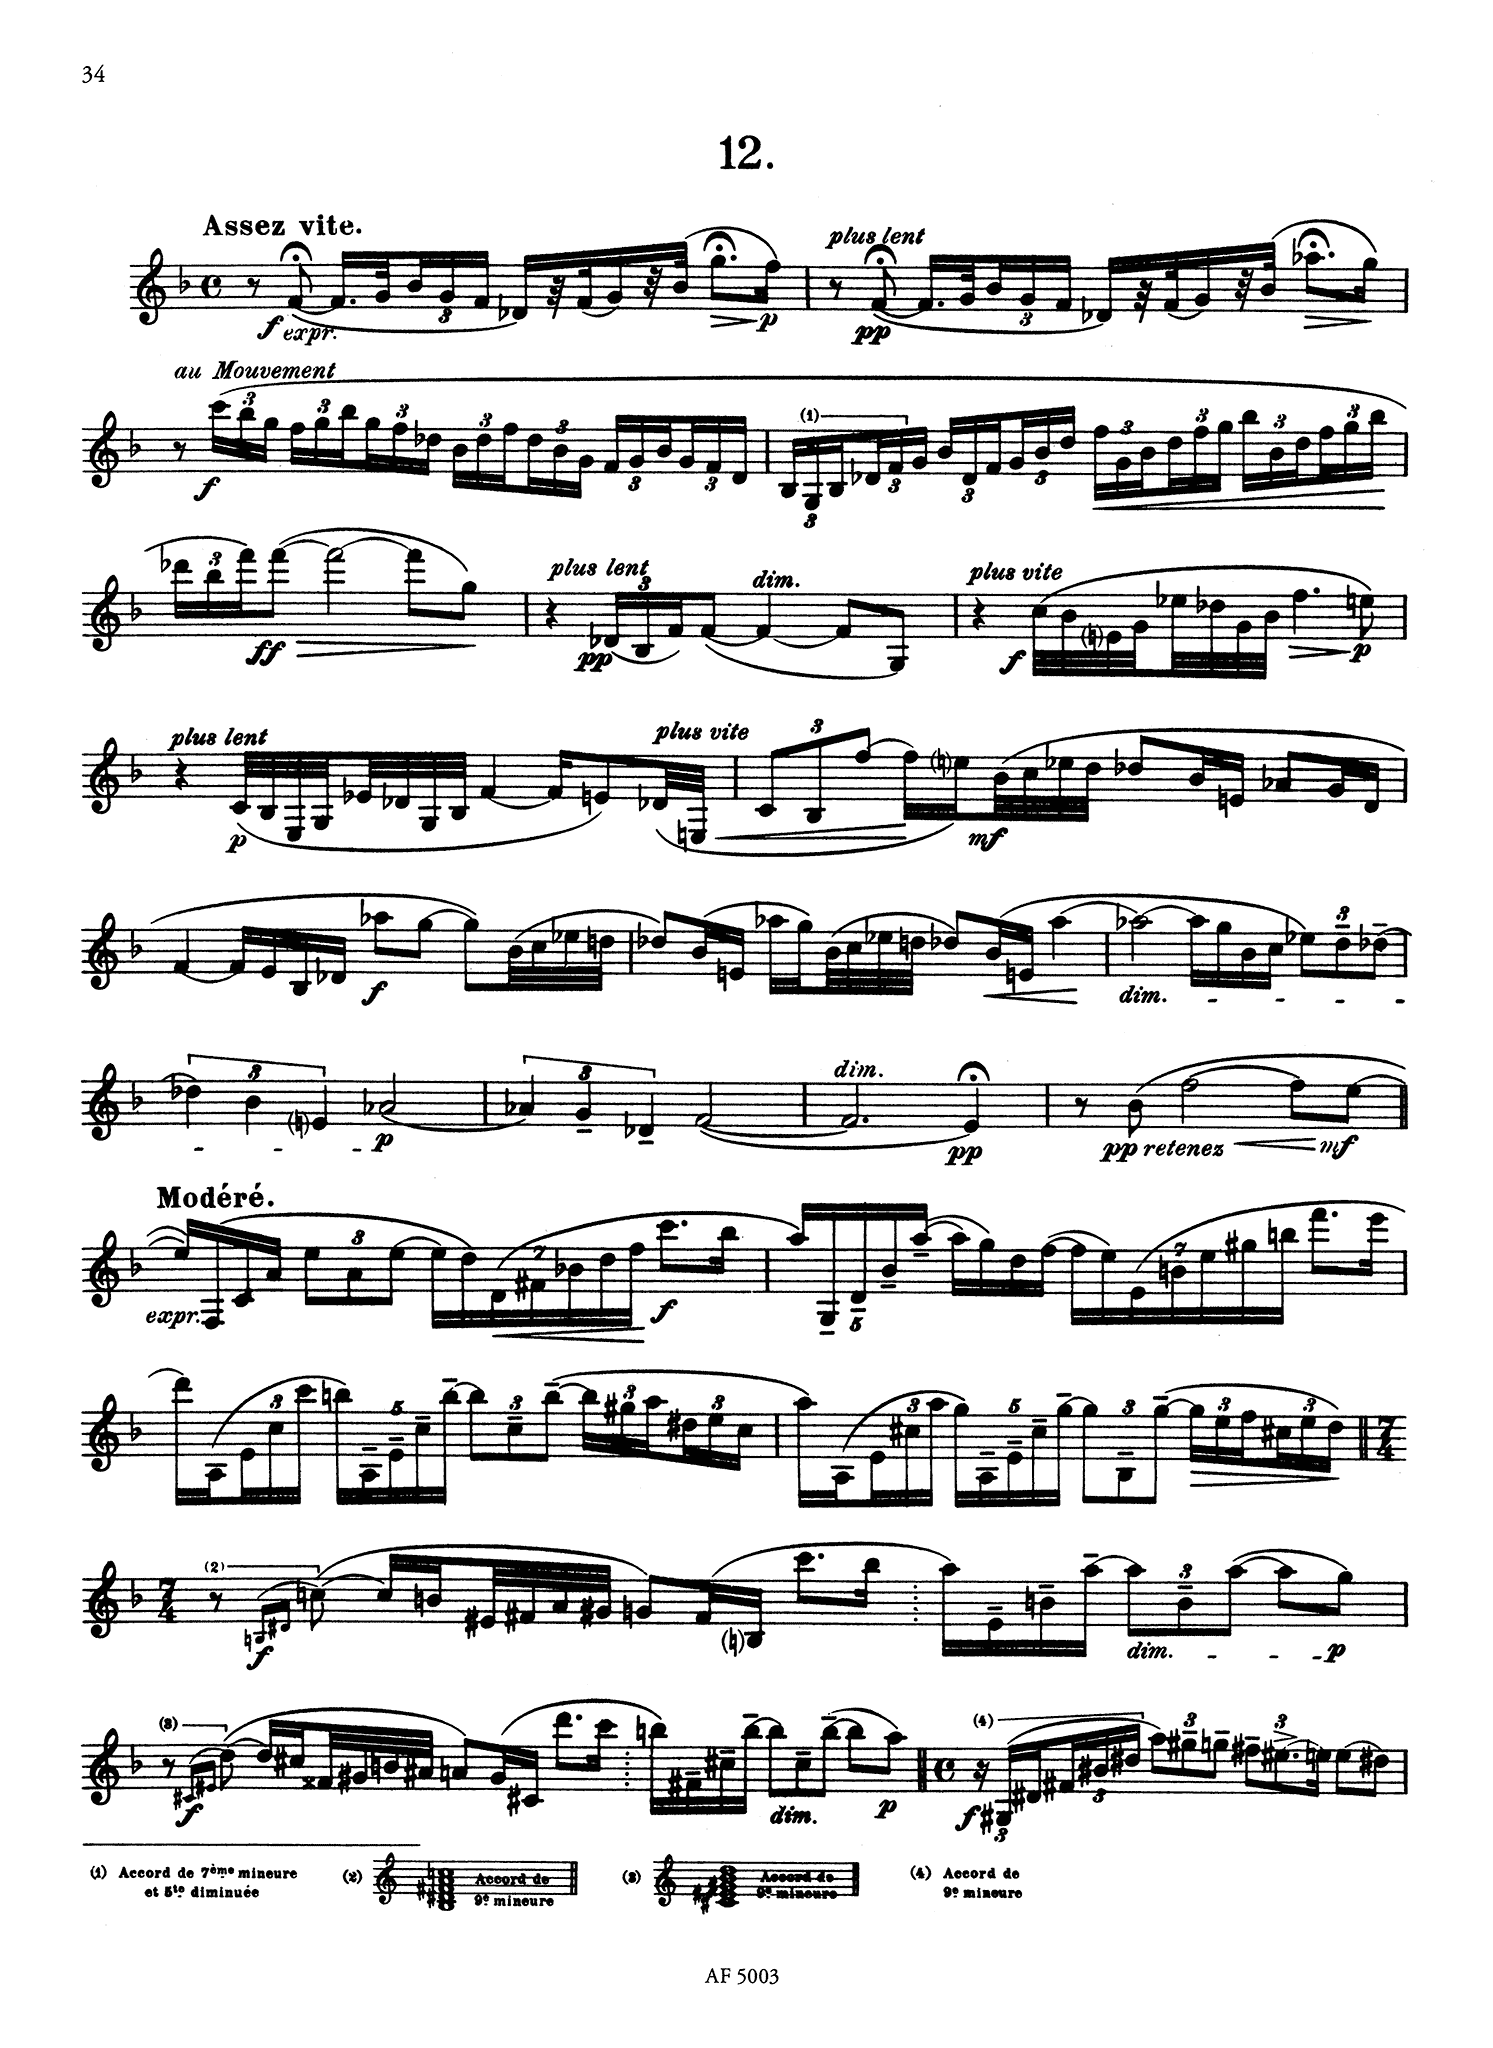 18 Advanced Studies for B-Flat Clarinet Page 34